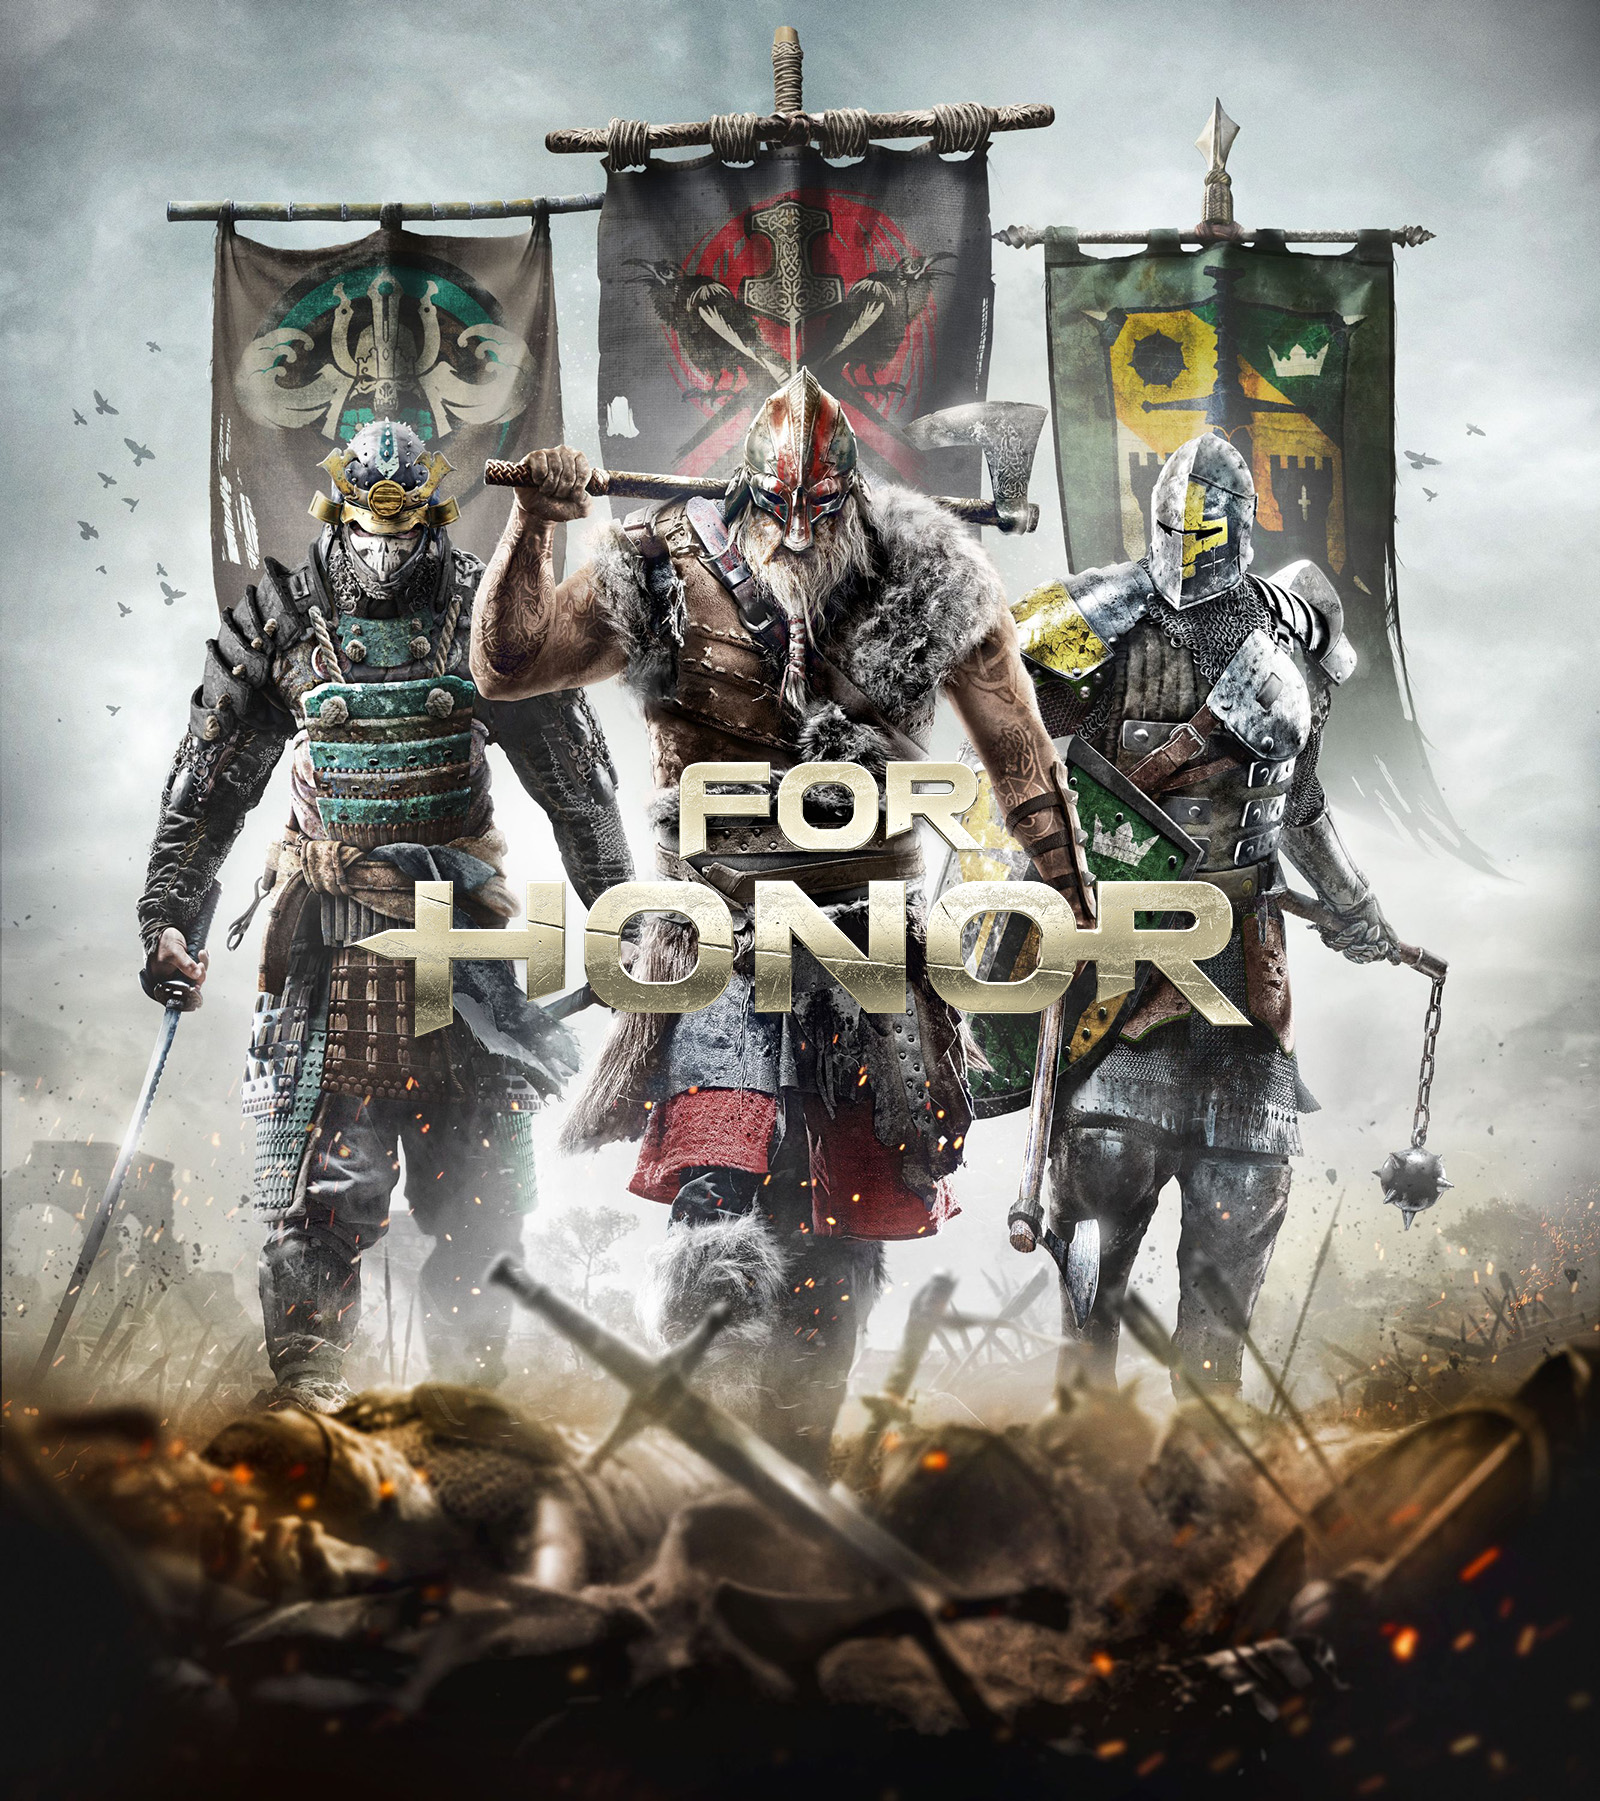 for honor,ubisoft,cheyan antwaune gray, cheyan gray, antwaune gray, thelifestyleelite,elite lifestyle, thelifestyleelitedotcom, thelifestyleelite.com,tlselite.com,TheLifeStyleElite.com,cheyan antwaune gray,fashion,models of thelifestyleelite.com, the life style elite,the lifestyle elite,elite lifestyle,lifestyleelite.com,cheyan gray,TLSElite,TLSElite.com,TLSEliteGaming,TLSElite Gaming